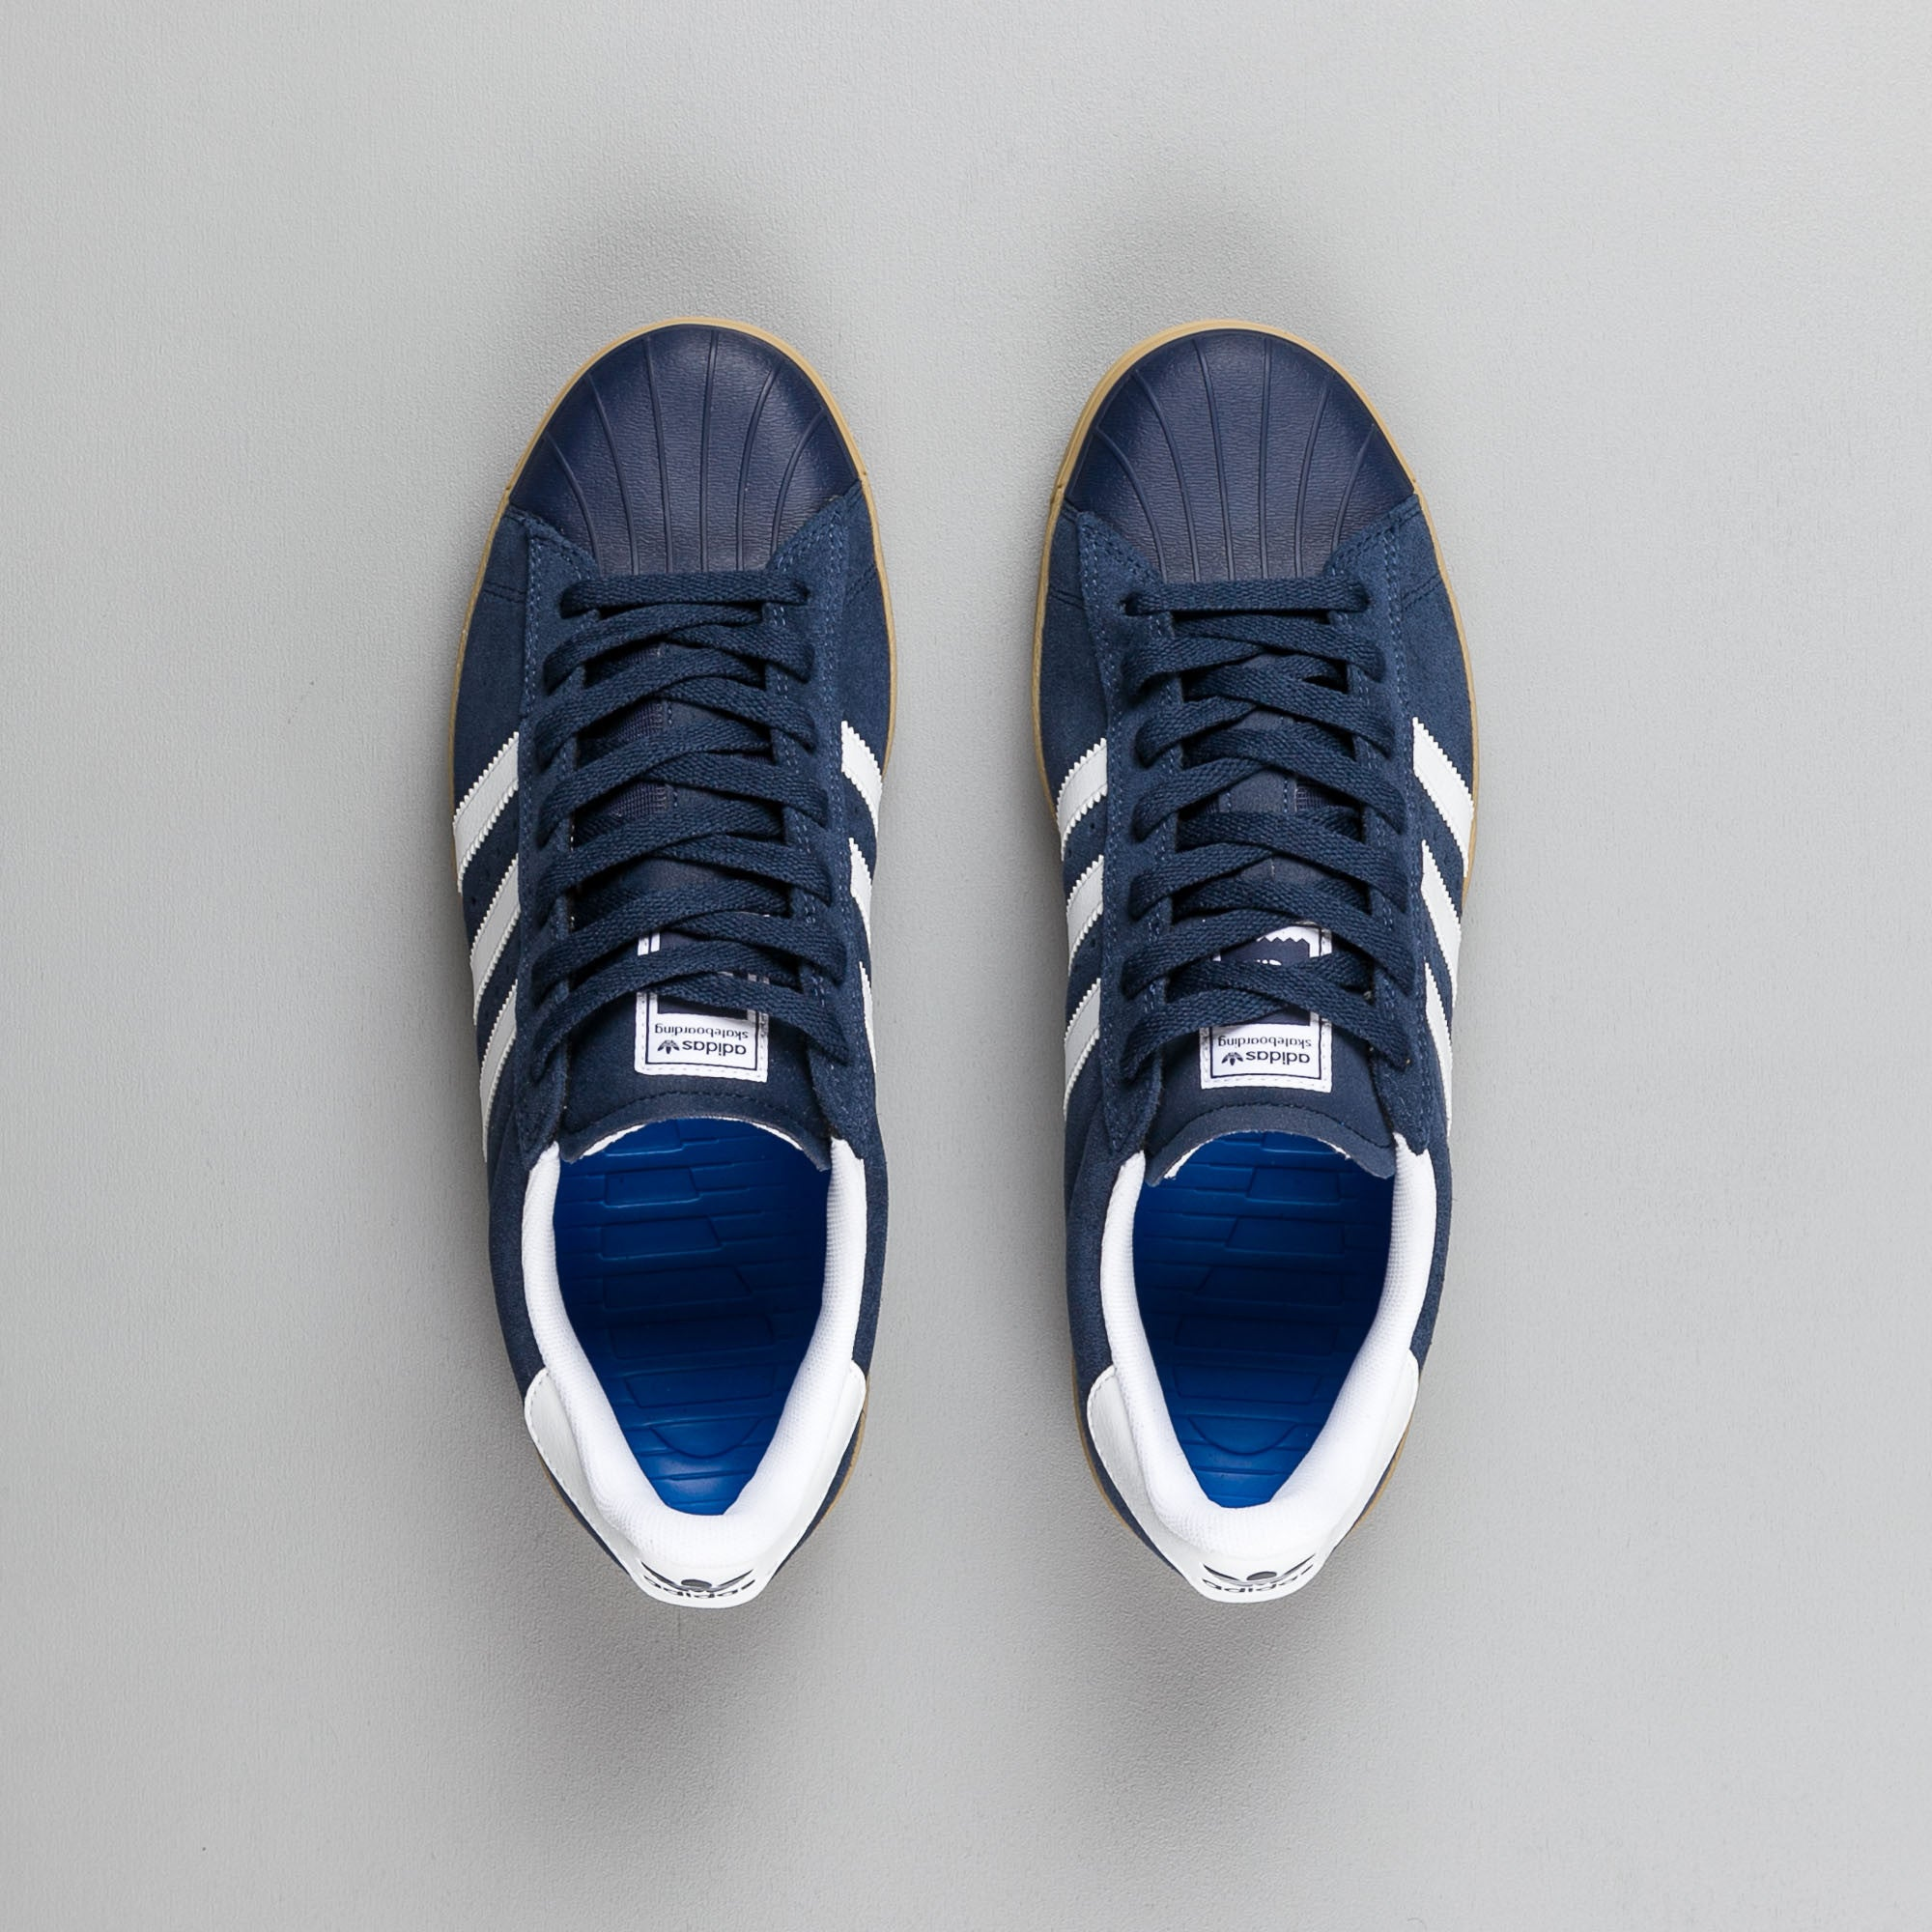 Adidas Superstar Vulc ADV Shoes - Collegiate Navy / White / Gum